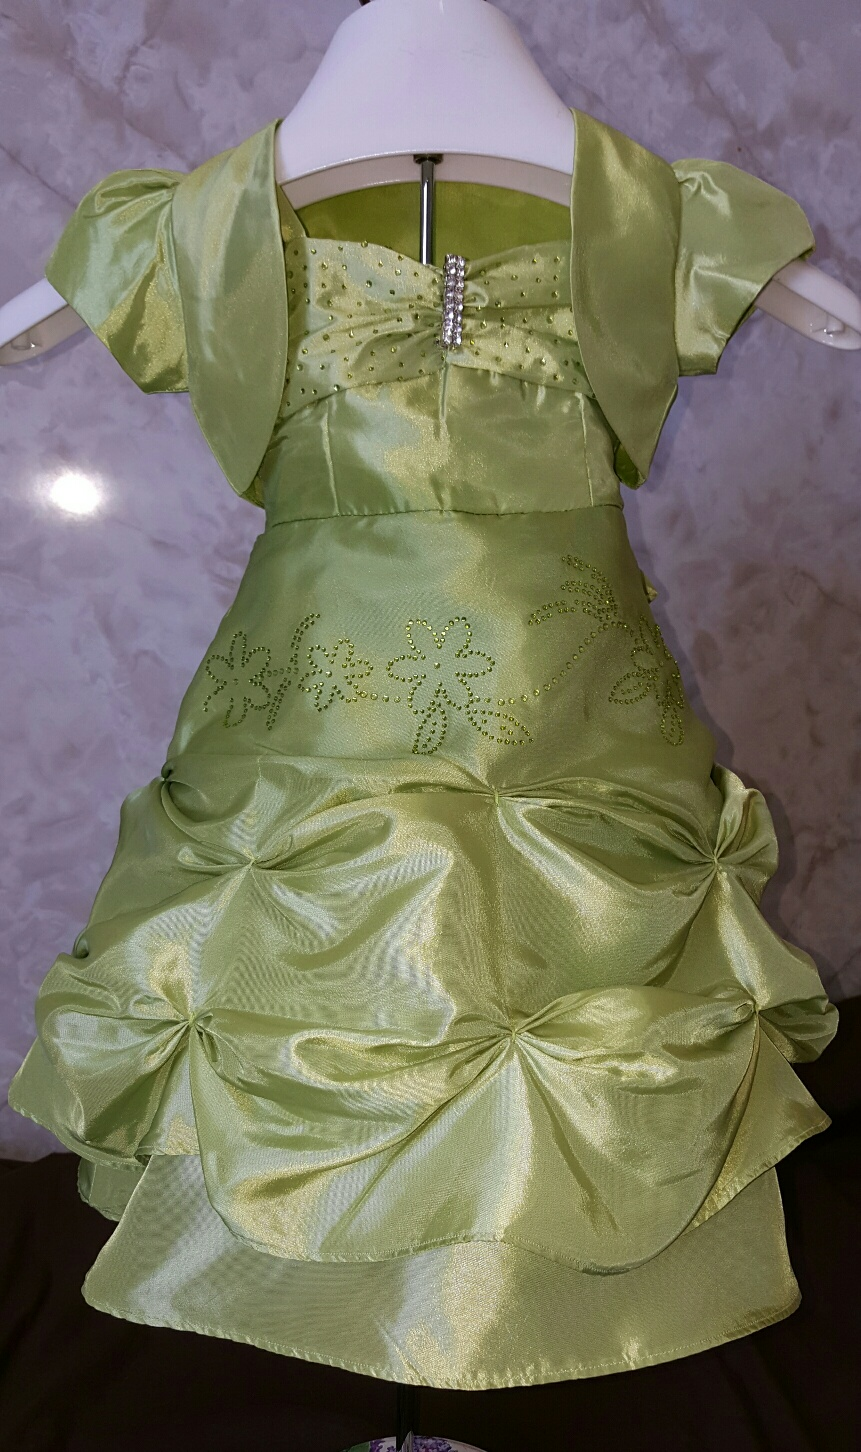 lime green baby dress